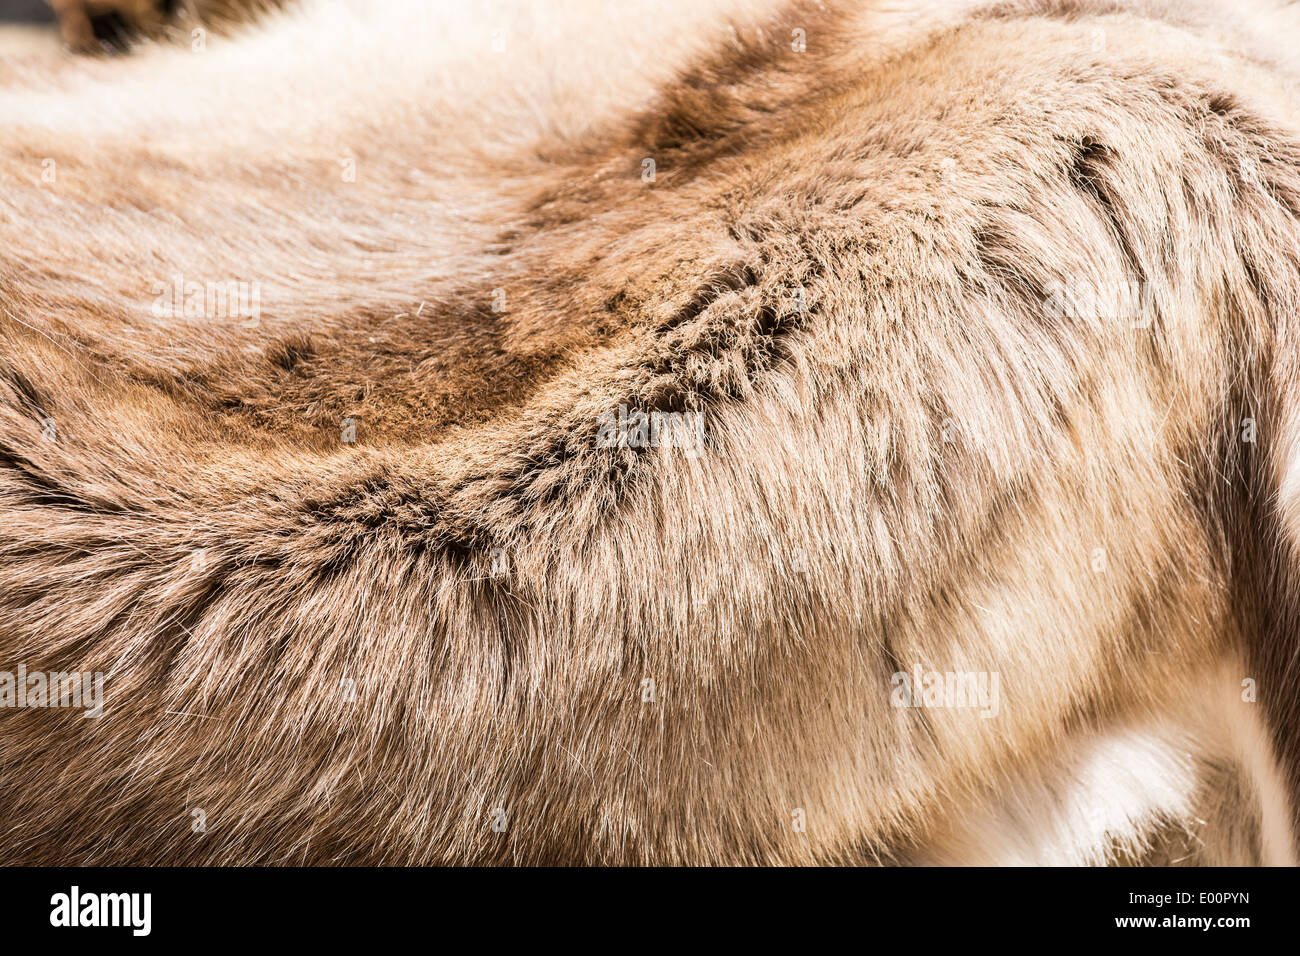 Fur pelt from the carcass of a dead animal Stock Photo